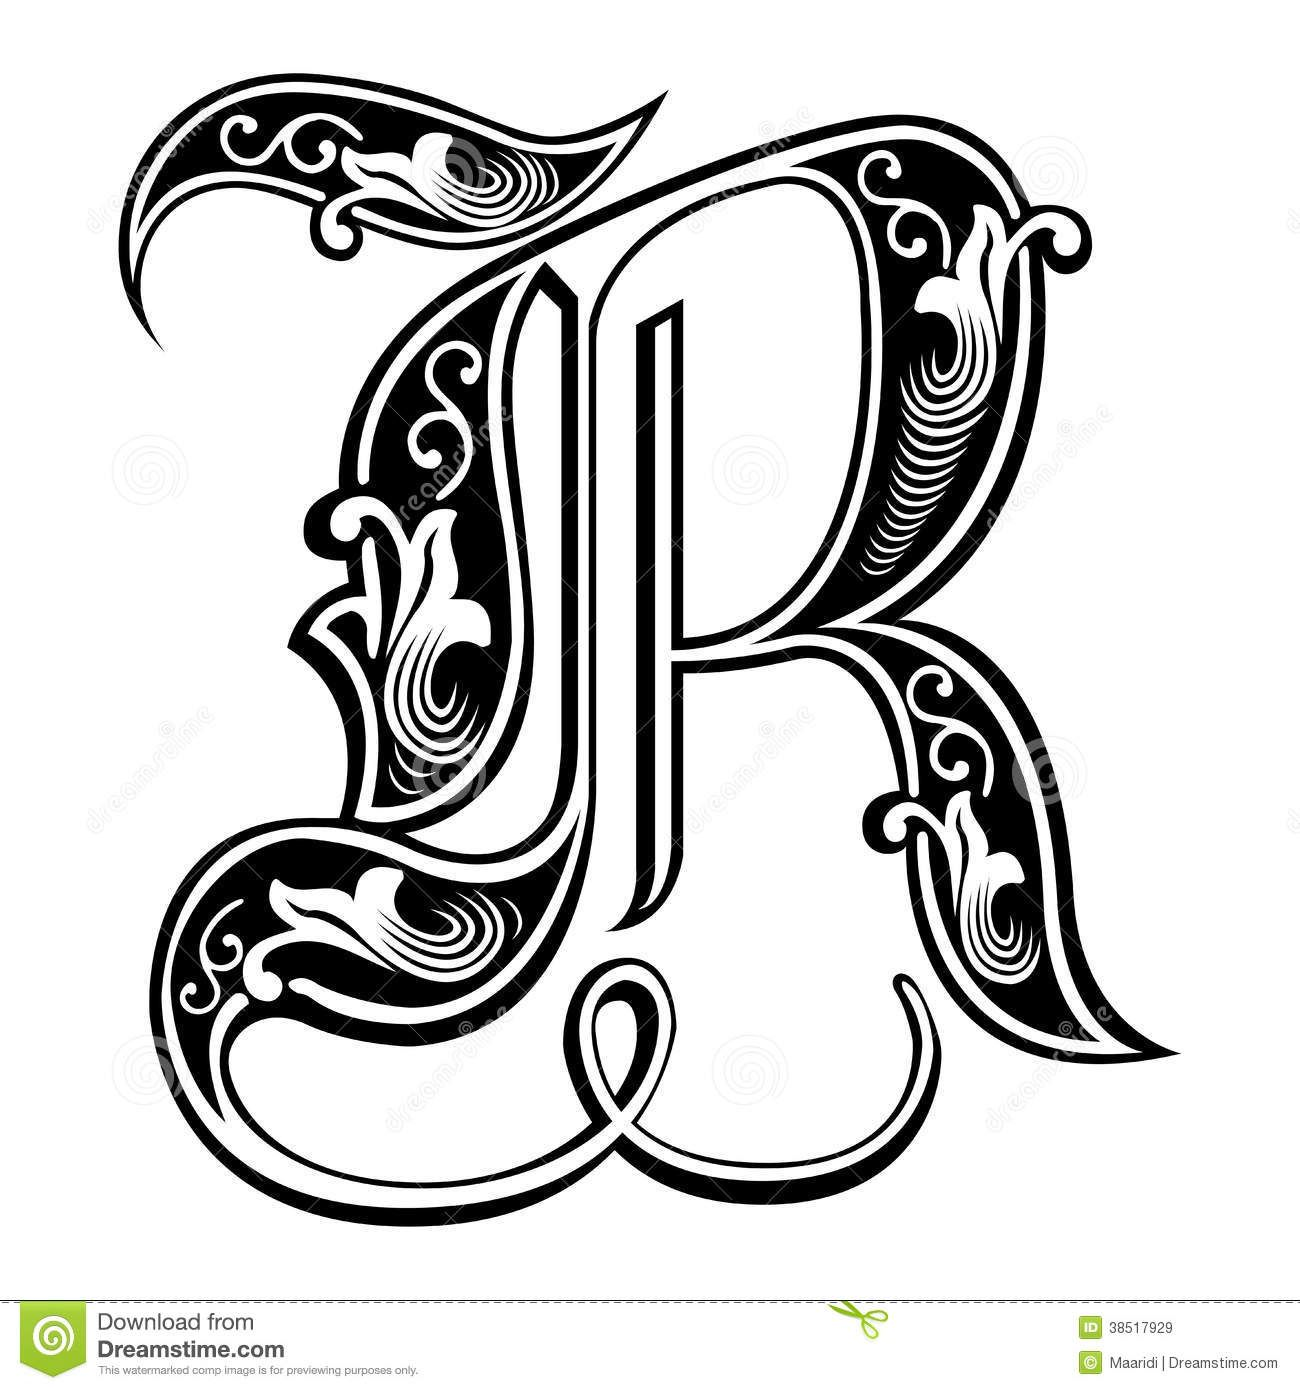 Garnished Gothic Style Font Letter R Download From Over 67